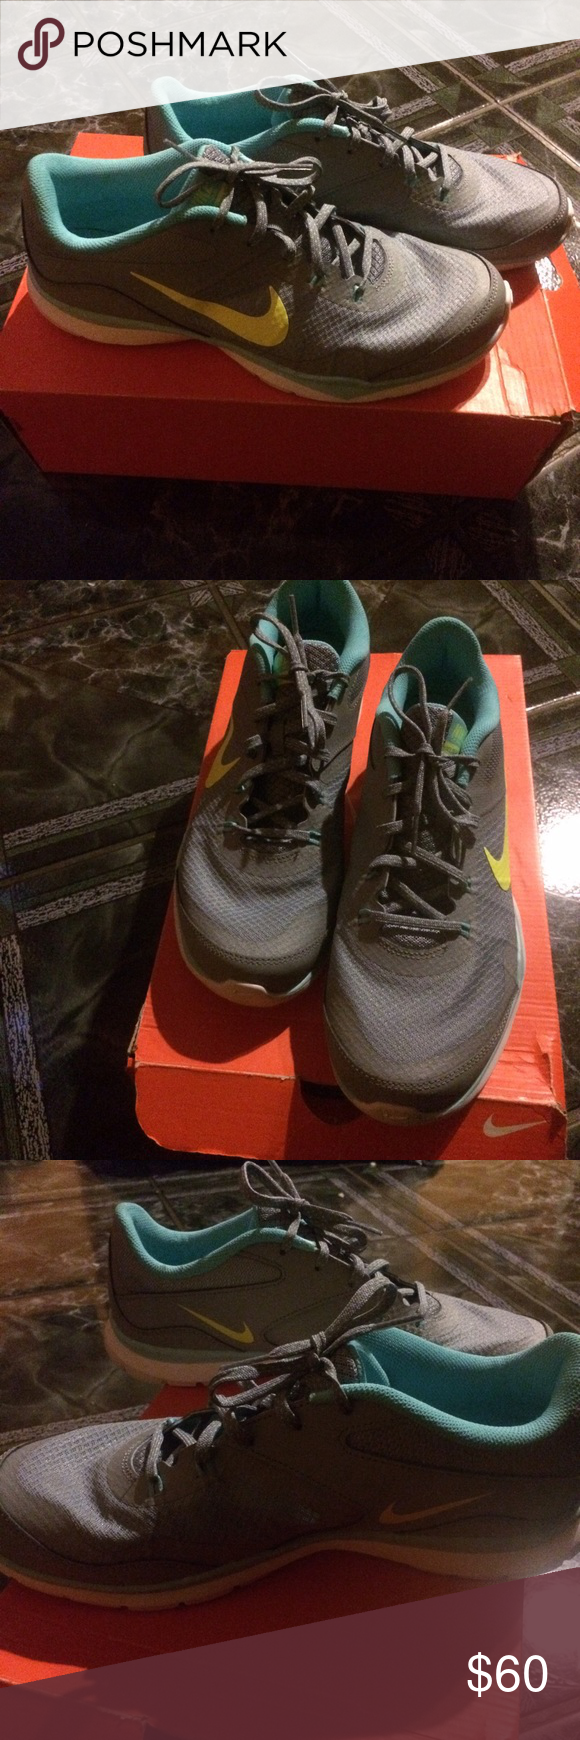 Women's Nike flex trainer 5 Nike flex, Gray shoes and Athletic shoes